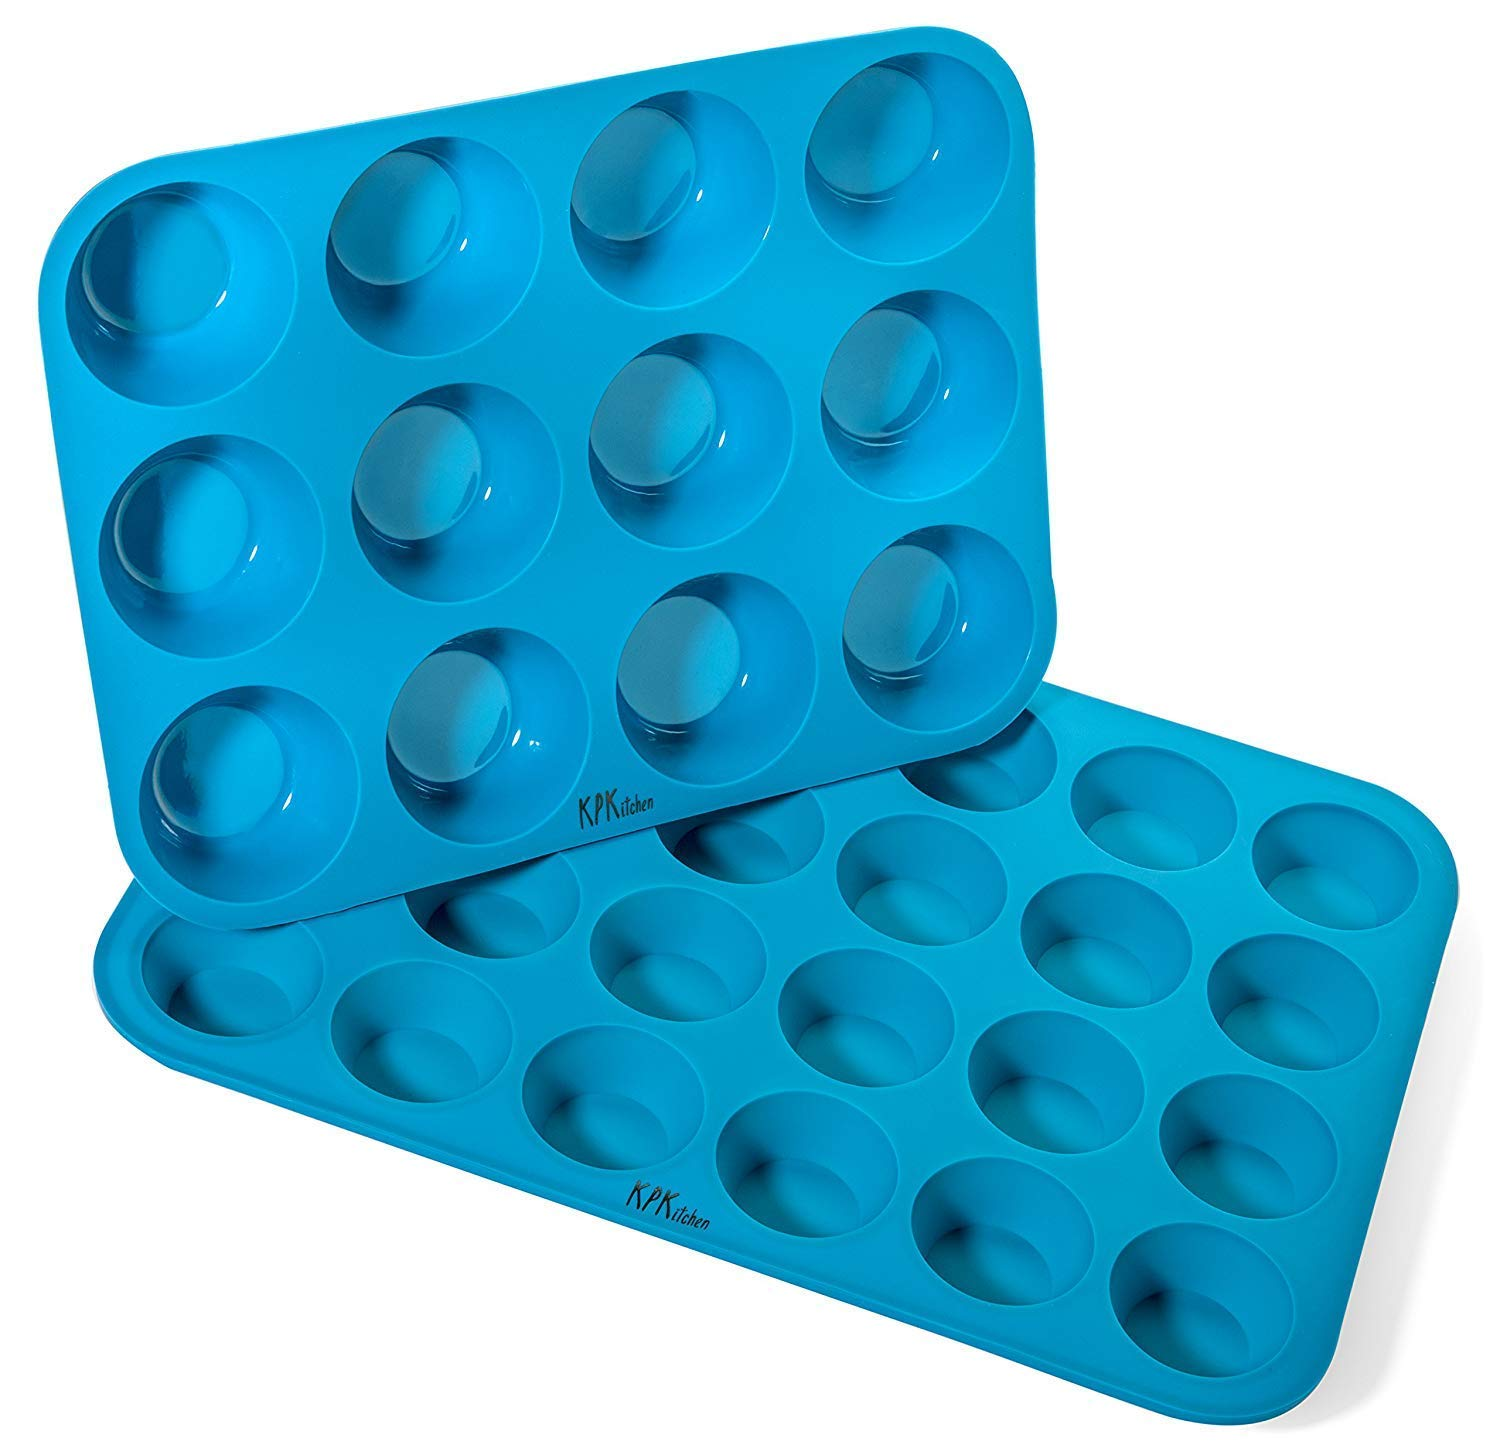 Silicone Muffin & Cupcake Baking Pan Set (12 & 24 Mini Cup Sizes) - Non Stick, BPA Free & Dishwasher Safe Silicon Bakeware Pans/Tins - Blue Top Home Kitchen Rubber Trays & Molds - Free Recipe eBook